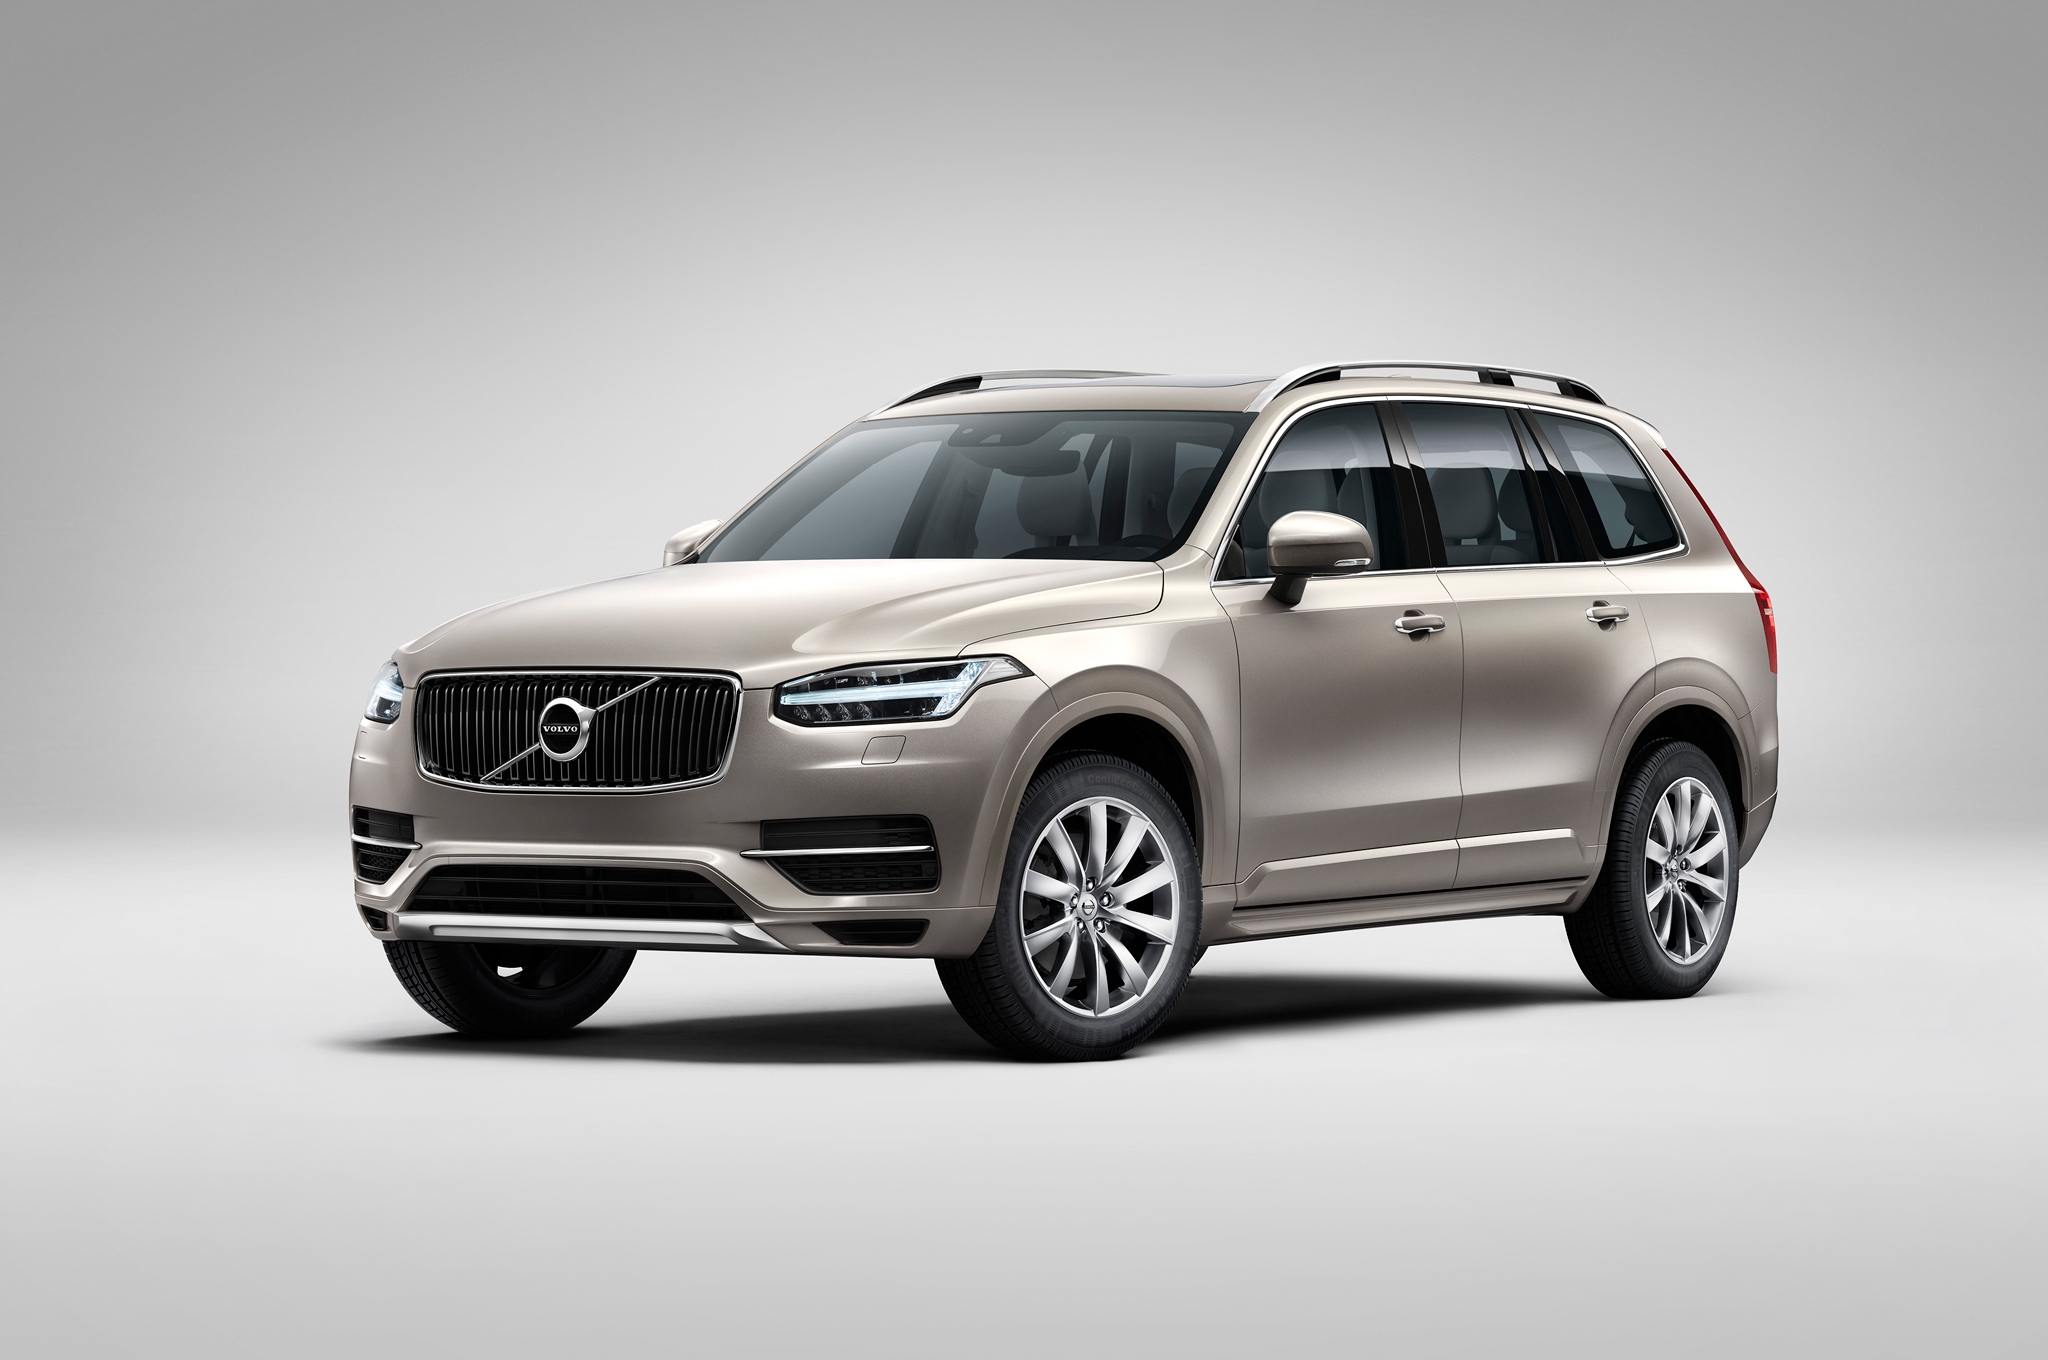 New Volvo Xc90 >> 10 Cool Facts About The All New 2016 Volvo Xc90 Motor Trend